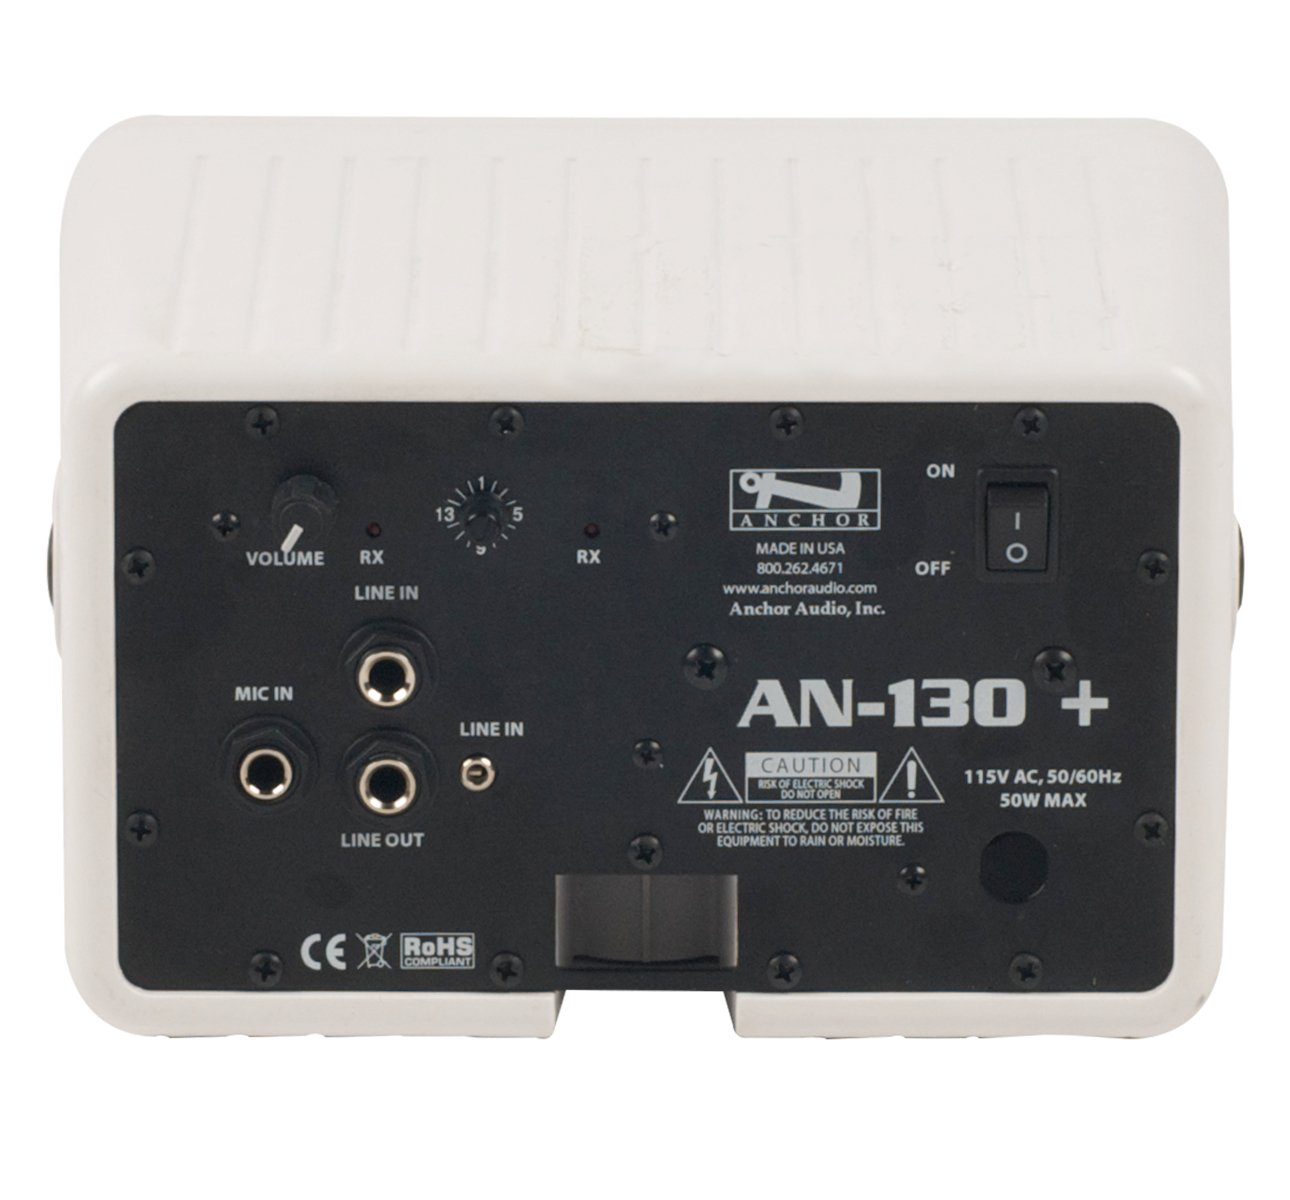 AN-130+ with One Wireless and Remote Control, White